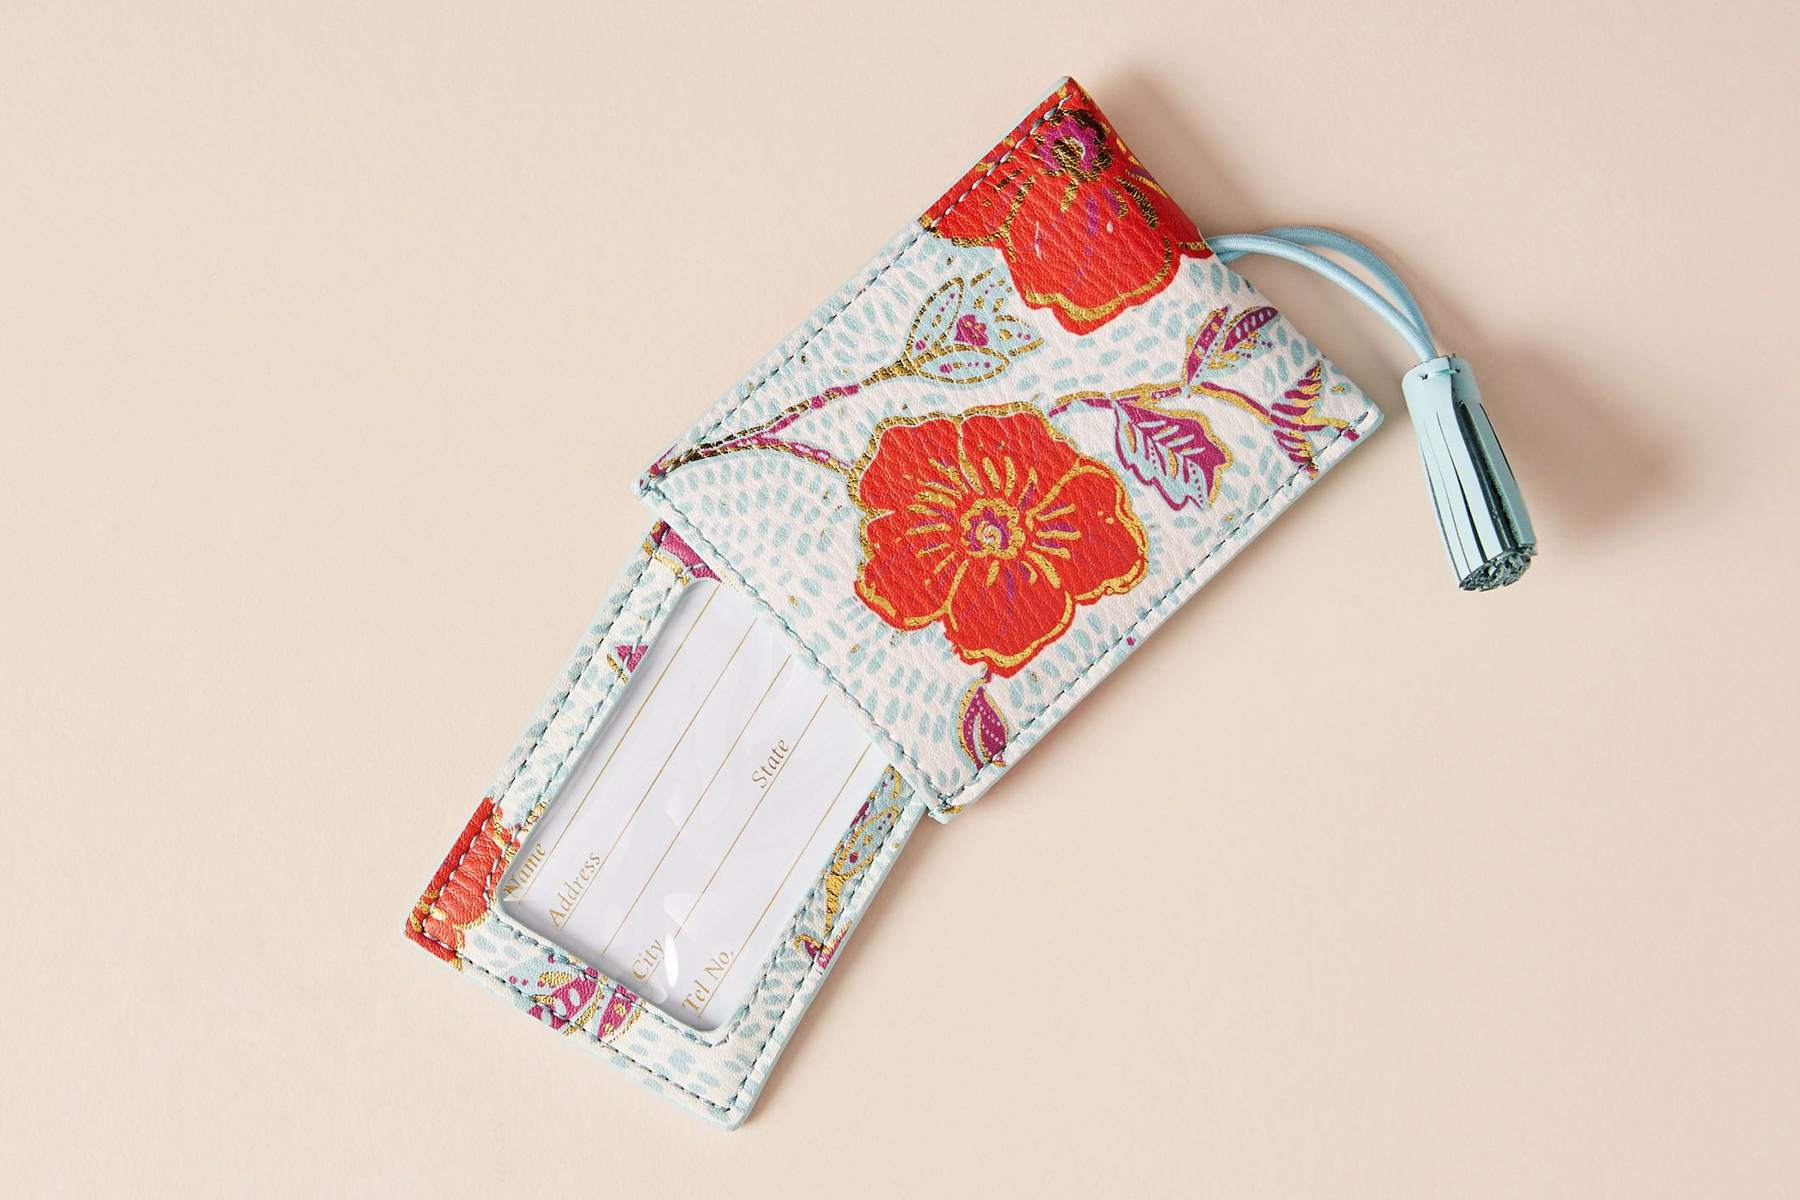 Bright Elodie luggage tag from Anthropologie